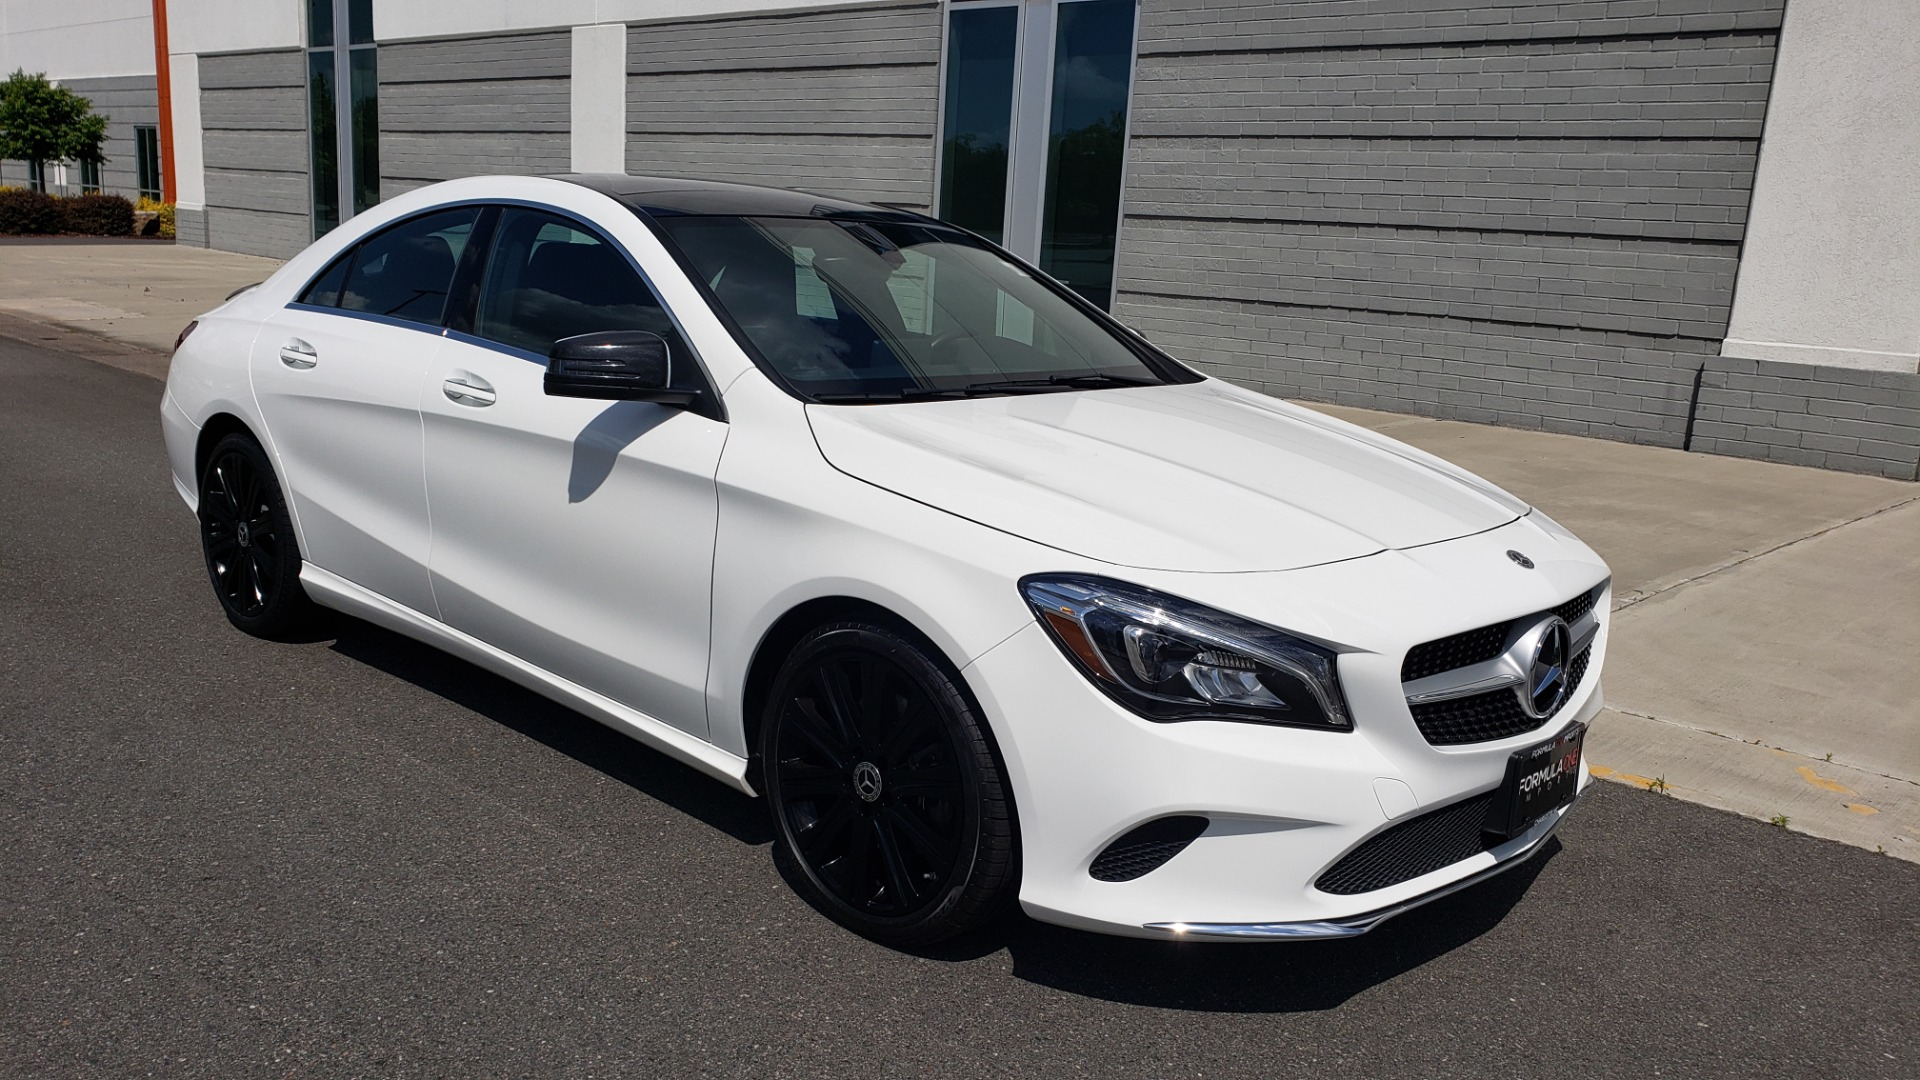 Used 2018 Mercedes-Benz CLA 250 4MATIC COUPE / PREMIUM / PANO-ROOF / APPLE / REARVIEW for sale Sold at Formula Imports in Charlotte NC 28227 7